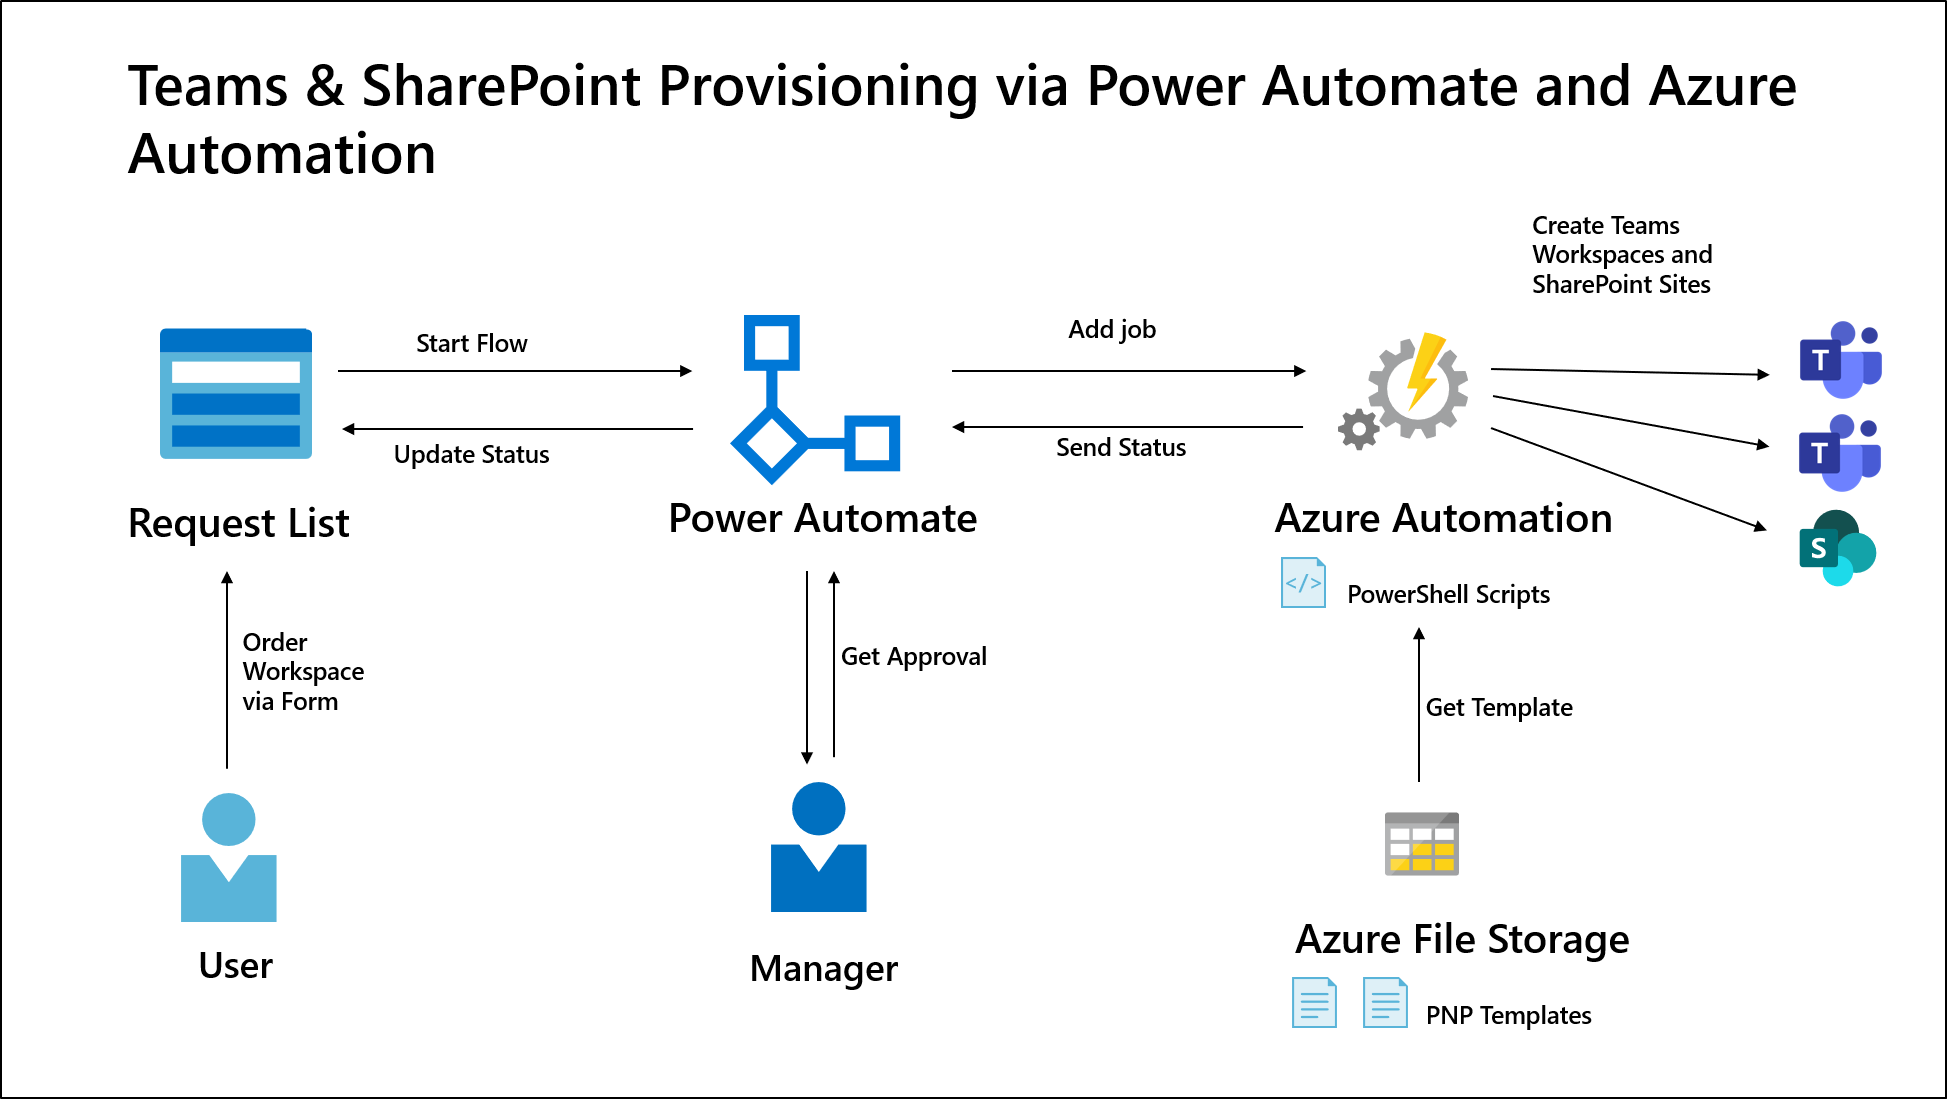 Teams and SharePoint Provisioning via Power Automate and Azure Automation